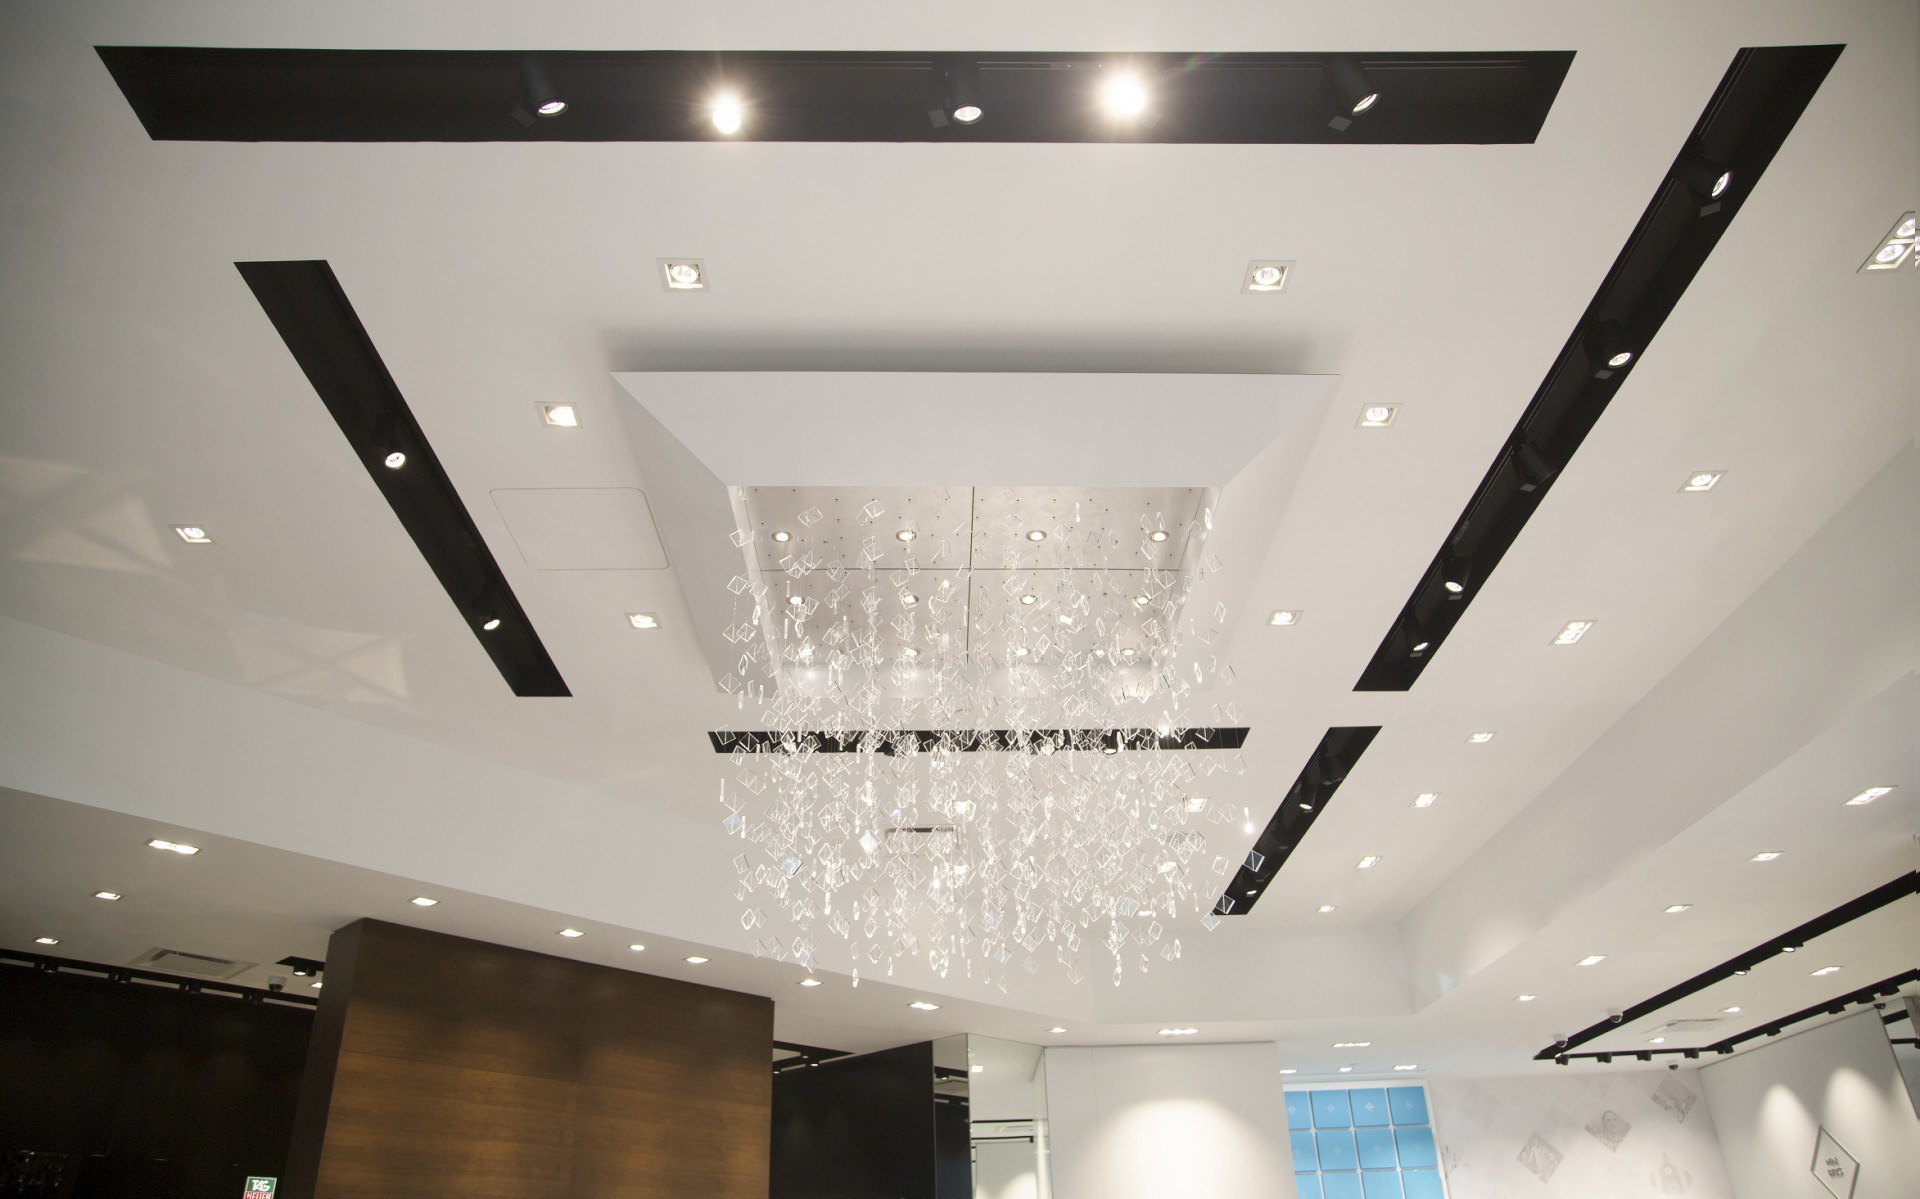 Fully adjustable, the luminaires increases the store's flexibility, allowing it to change display lighting, as needed.